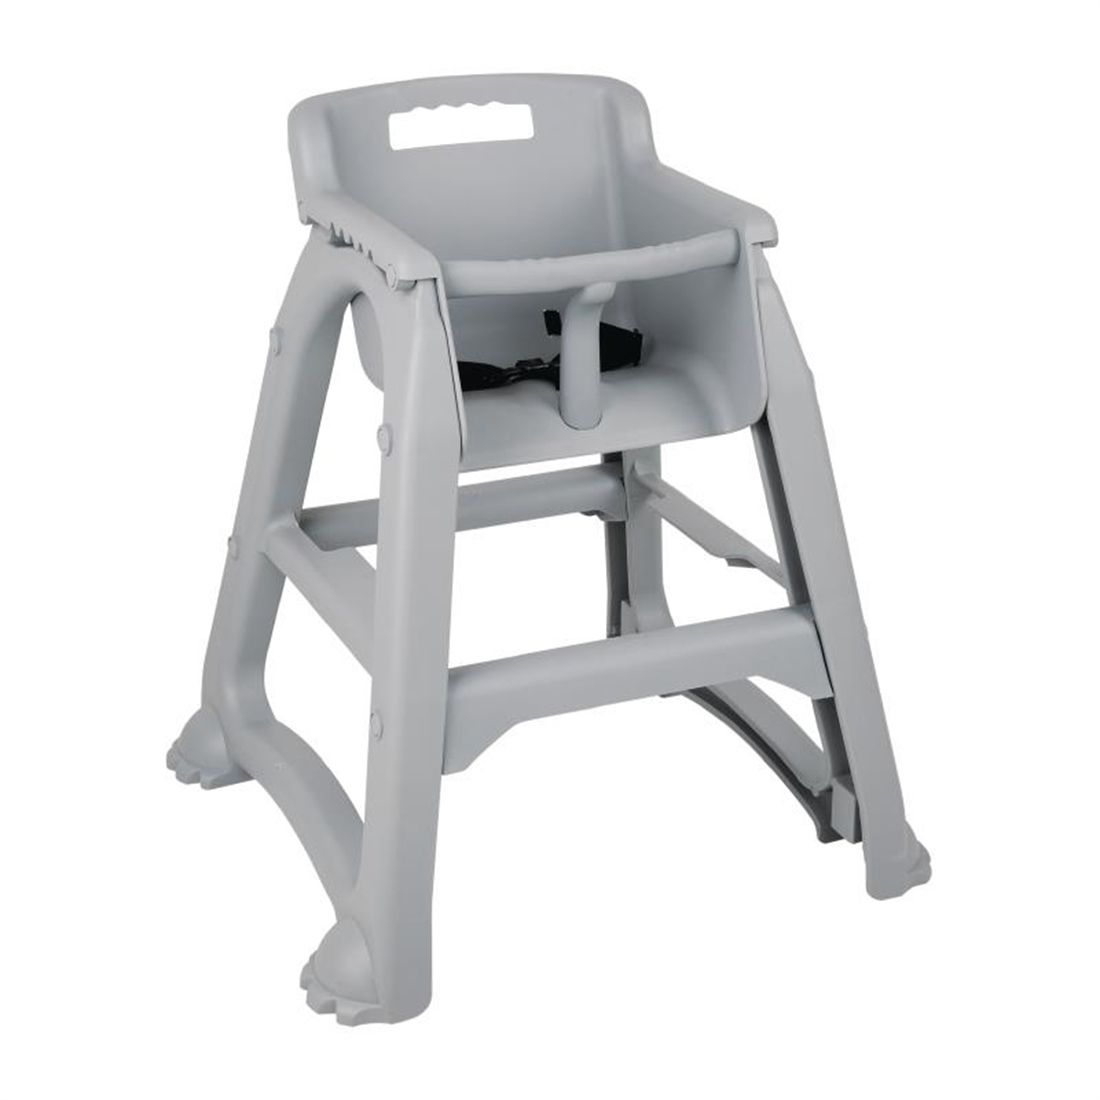 Easy Clean High Chair Details About Bolero Grey Pp Stackable High Chair Next Working Day Uk Delivery